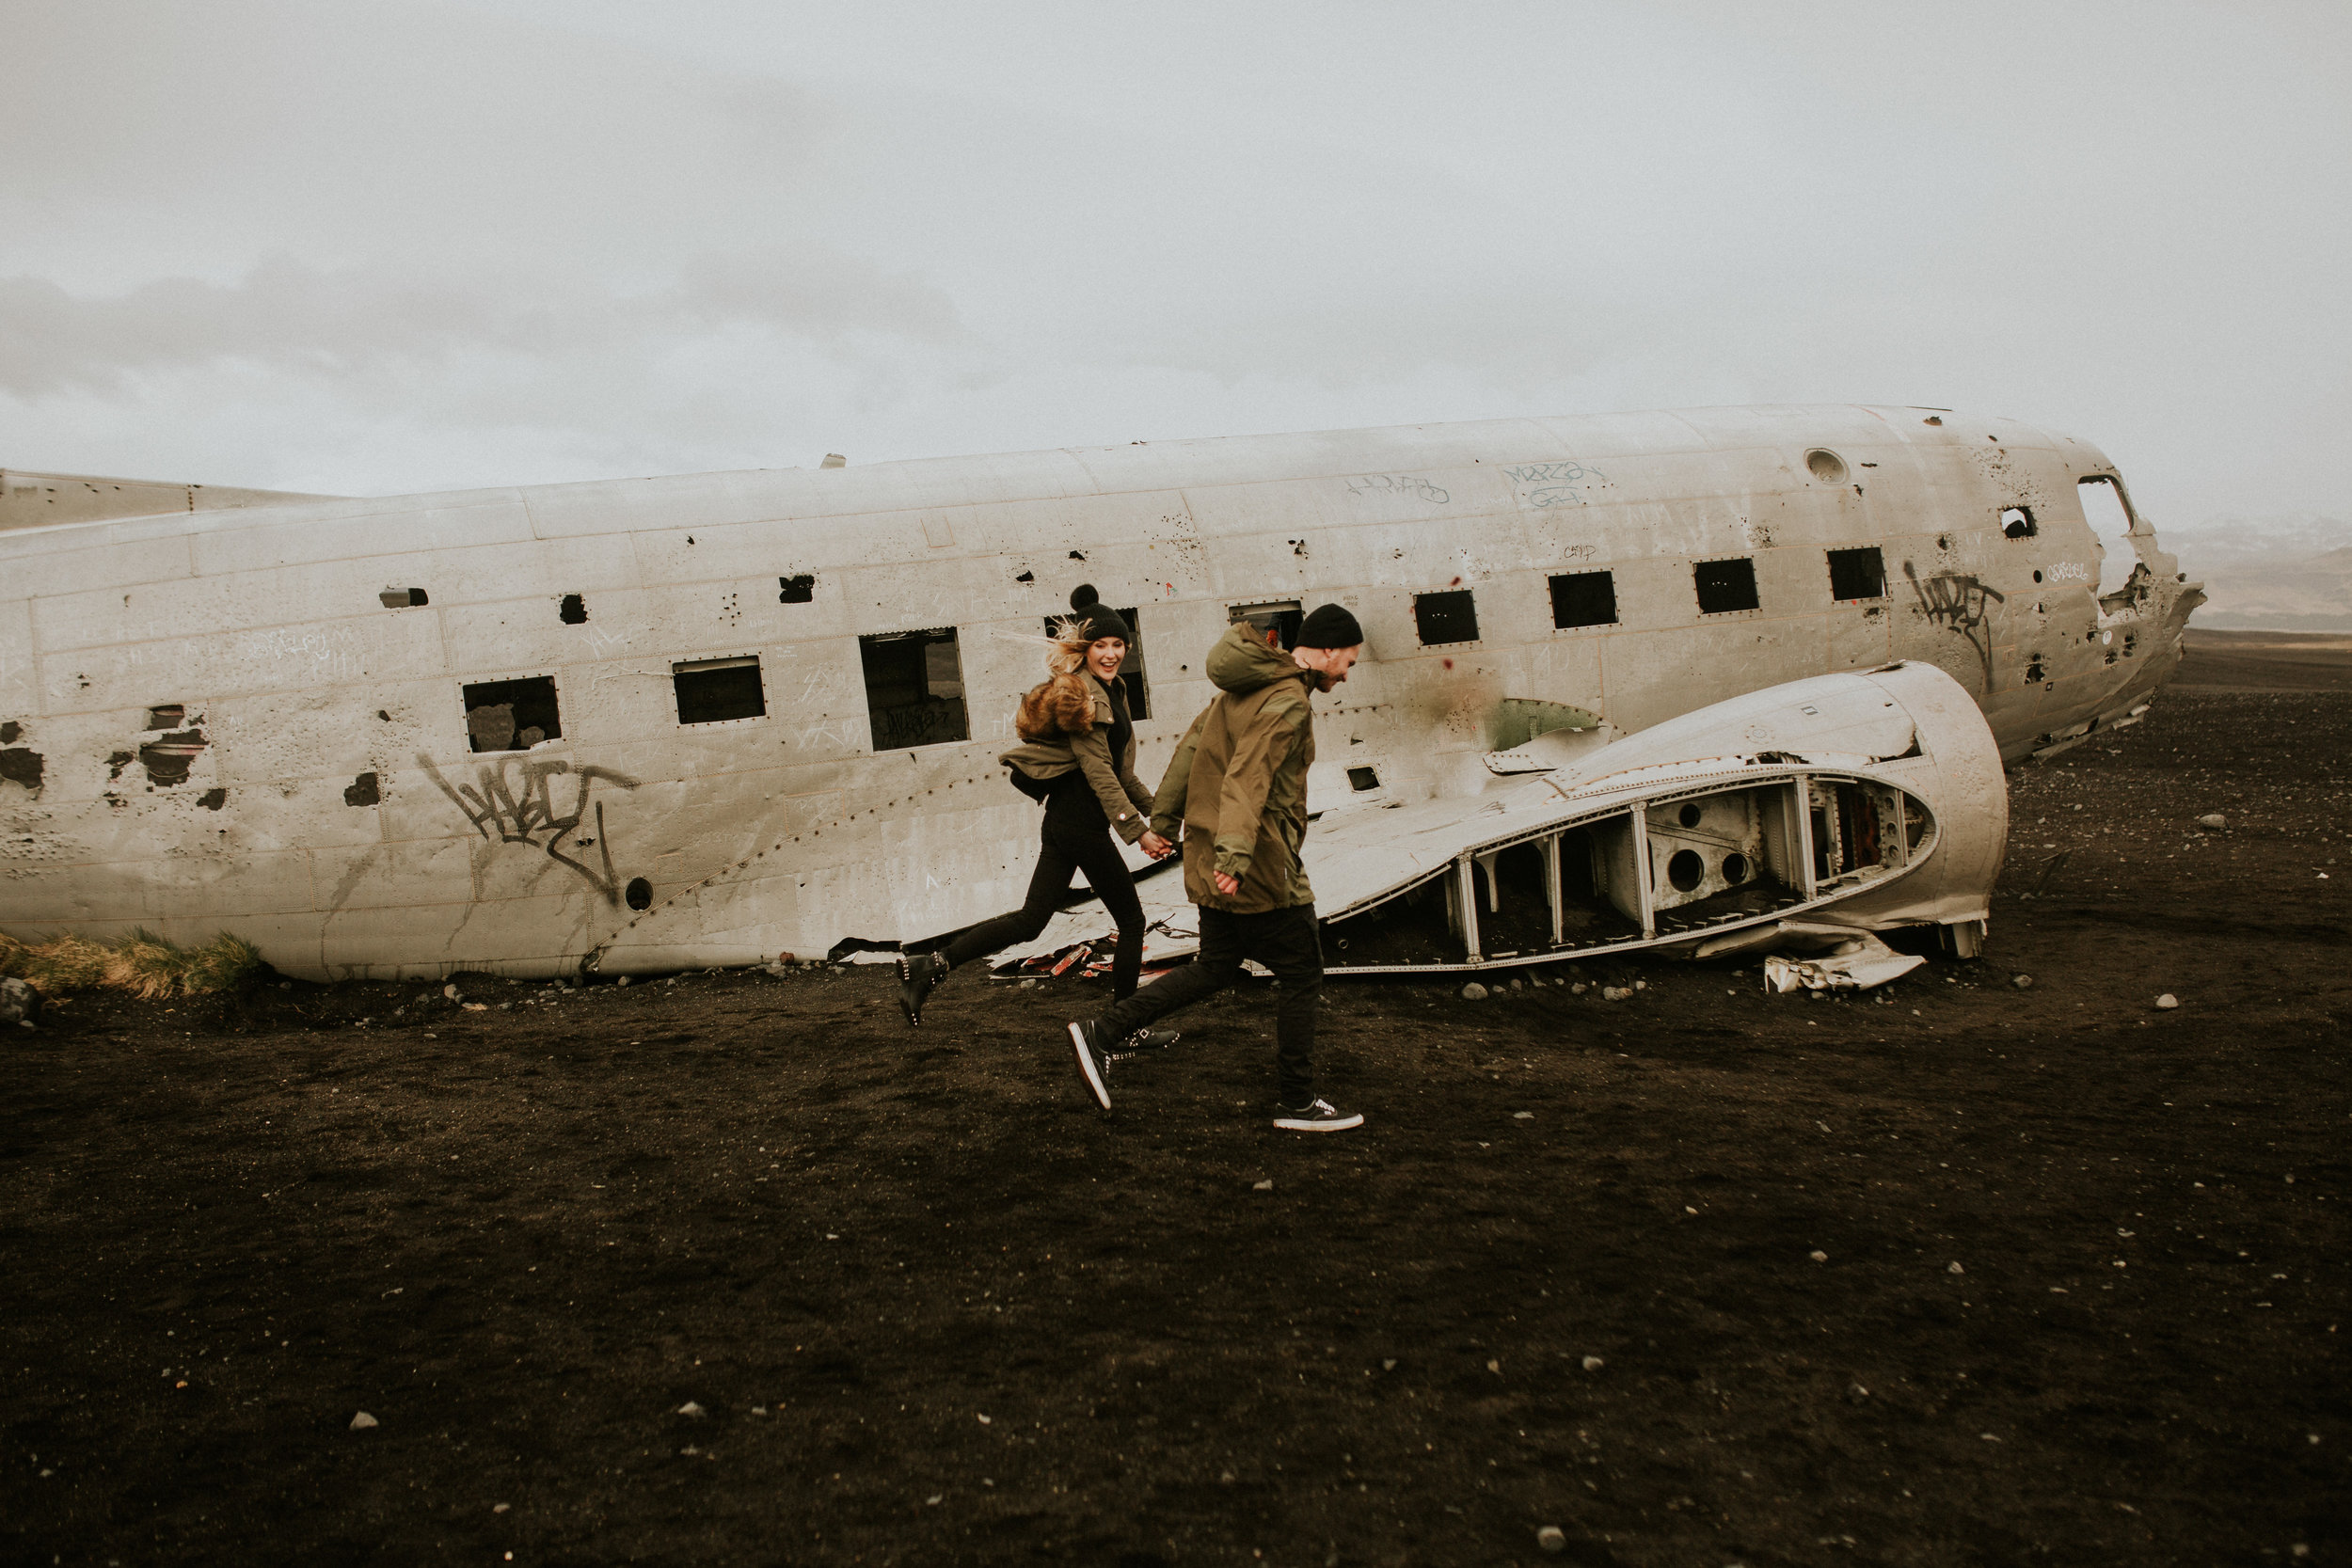 iceland   Sólheimasandur    plane crash engagement session by BreeAnna Lasher